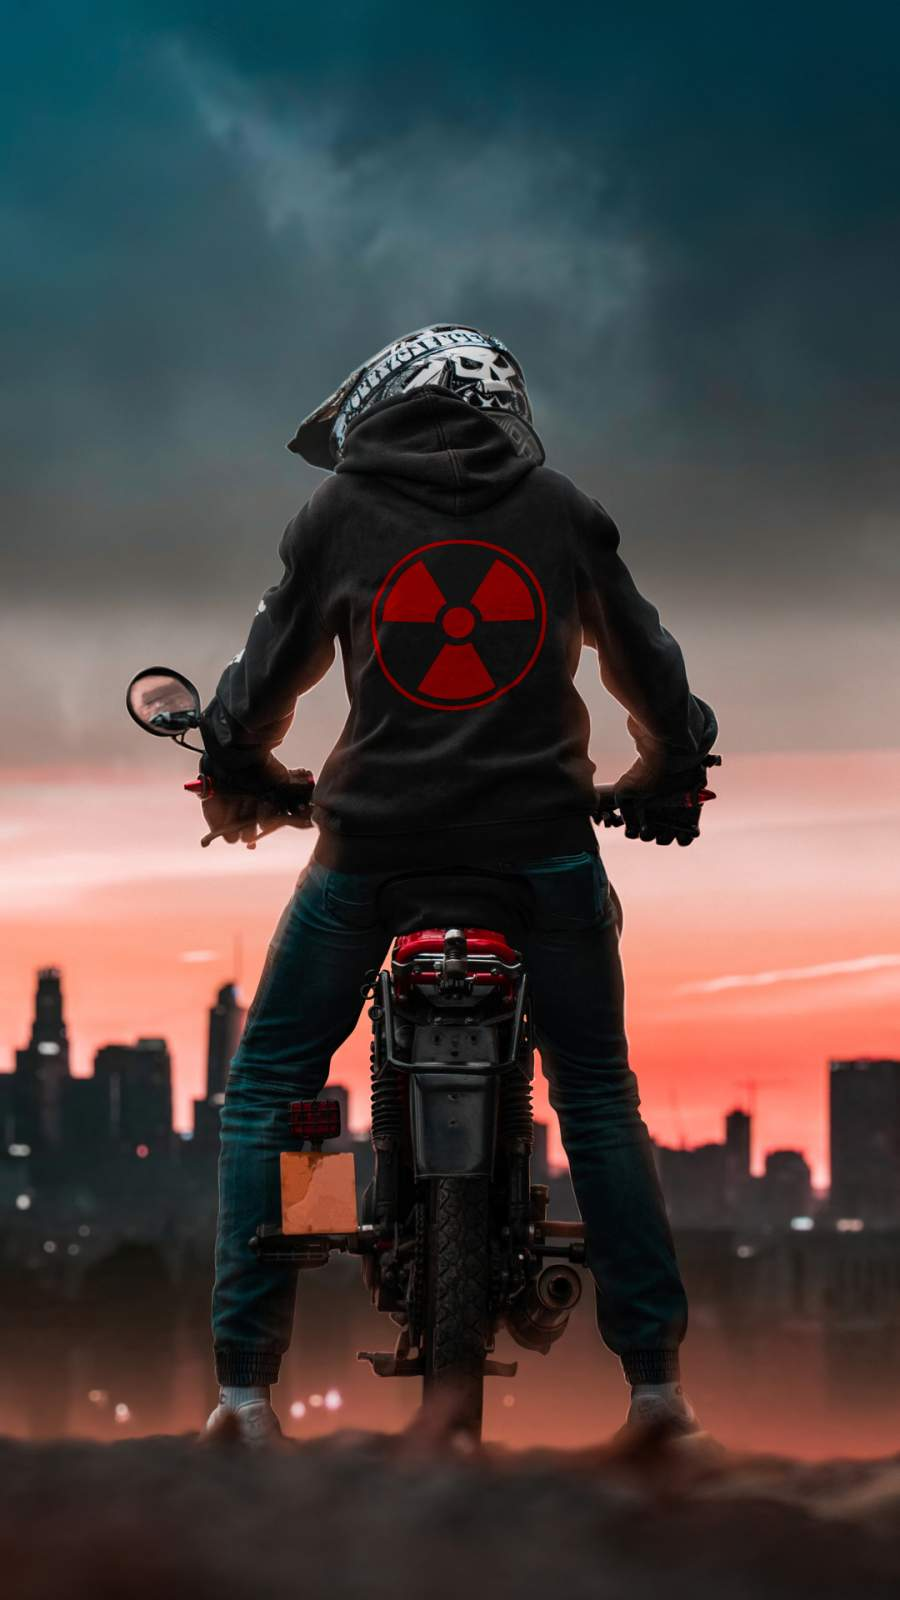 Radioactive Biker iPhone Wallpaper